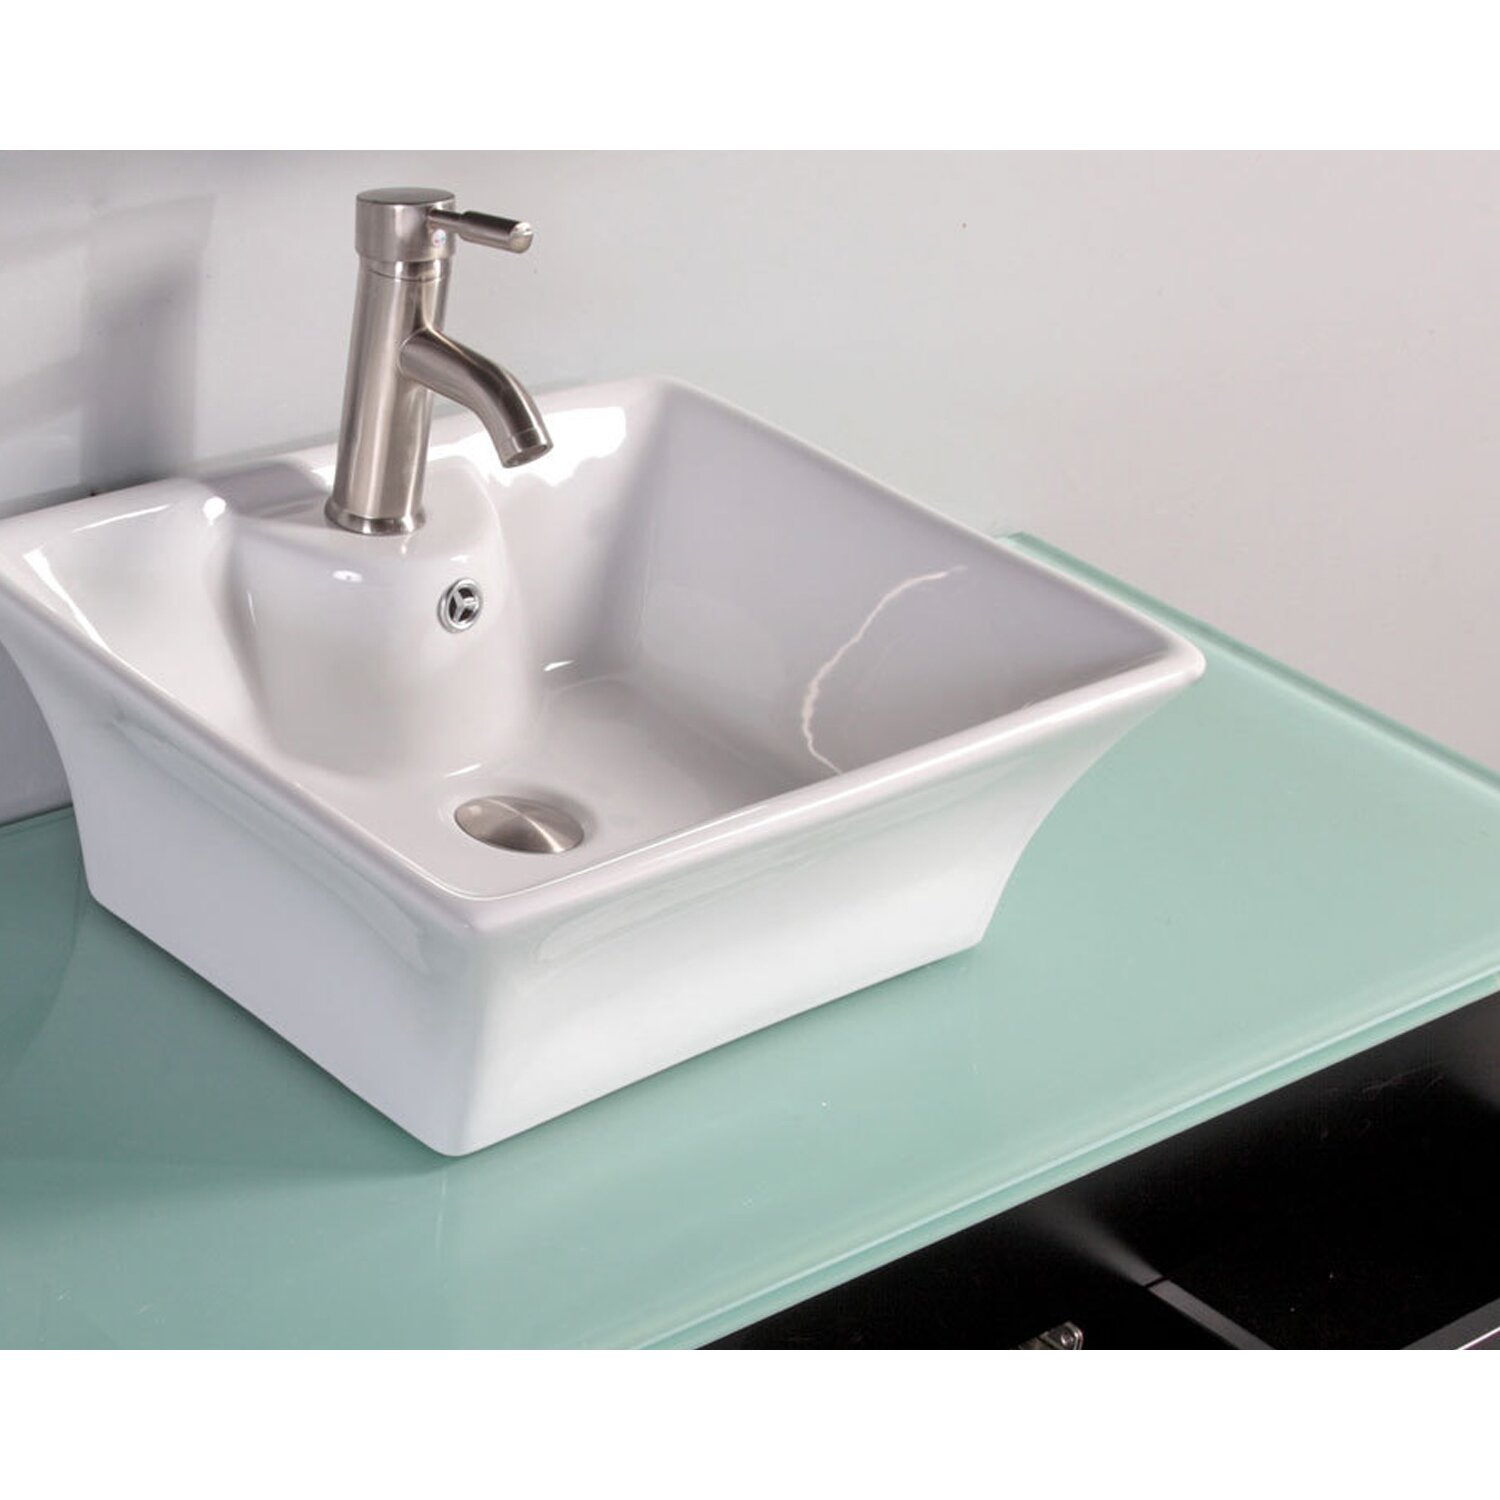 Mtdvanities nepal 48 single sink bathroom vanity set with for Kitchen sink in nepal